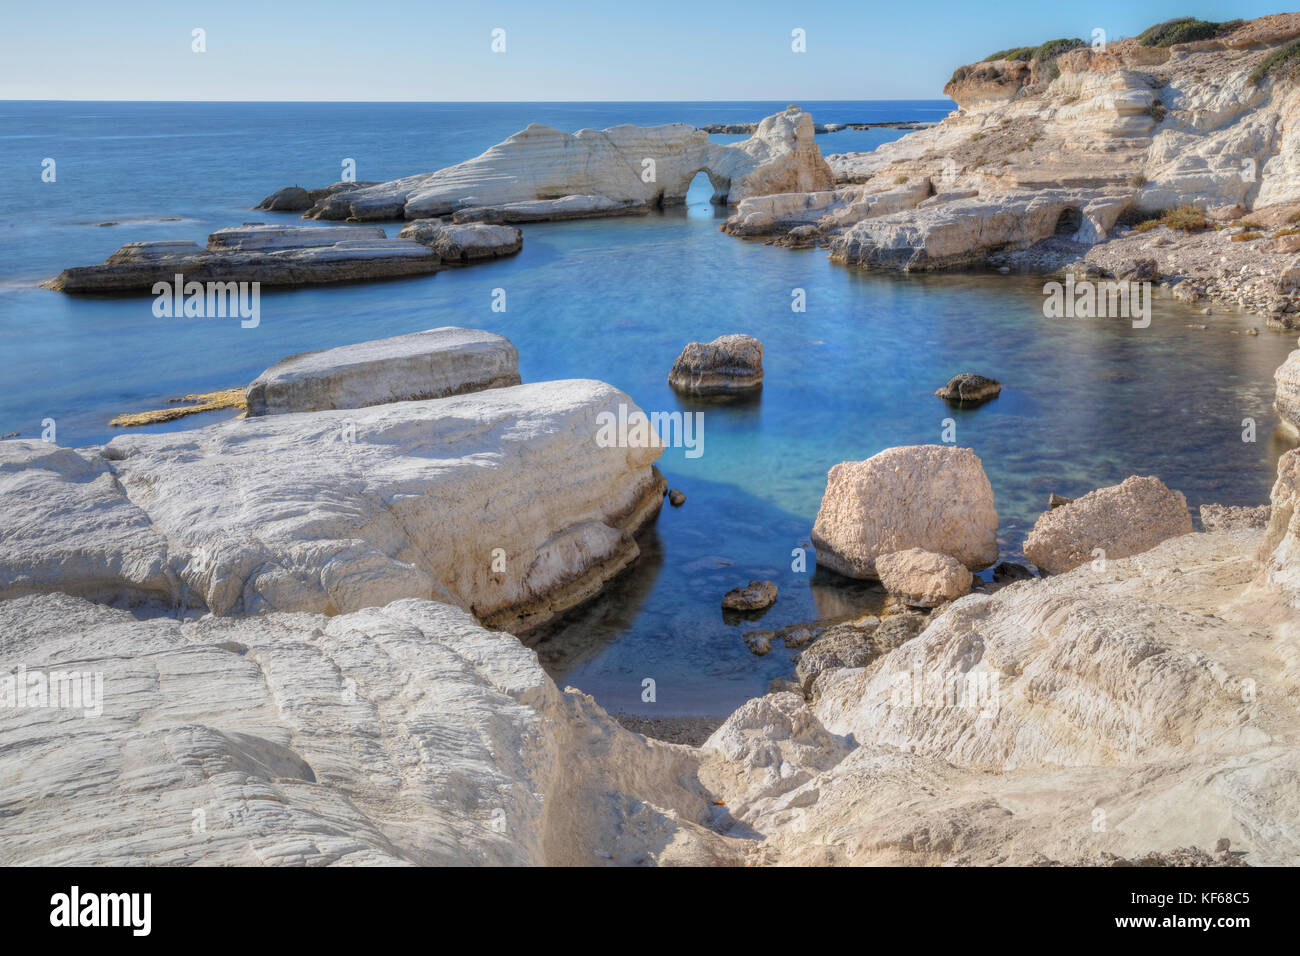 Pegeia, Paphos, Chypre Photo Stock